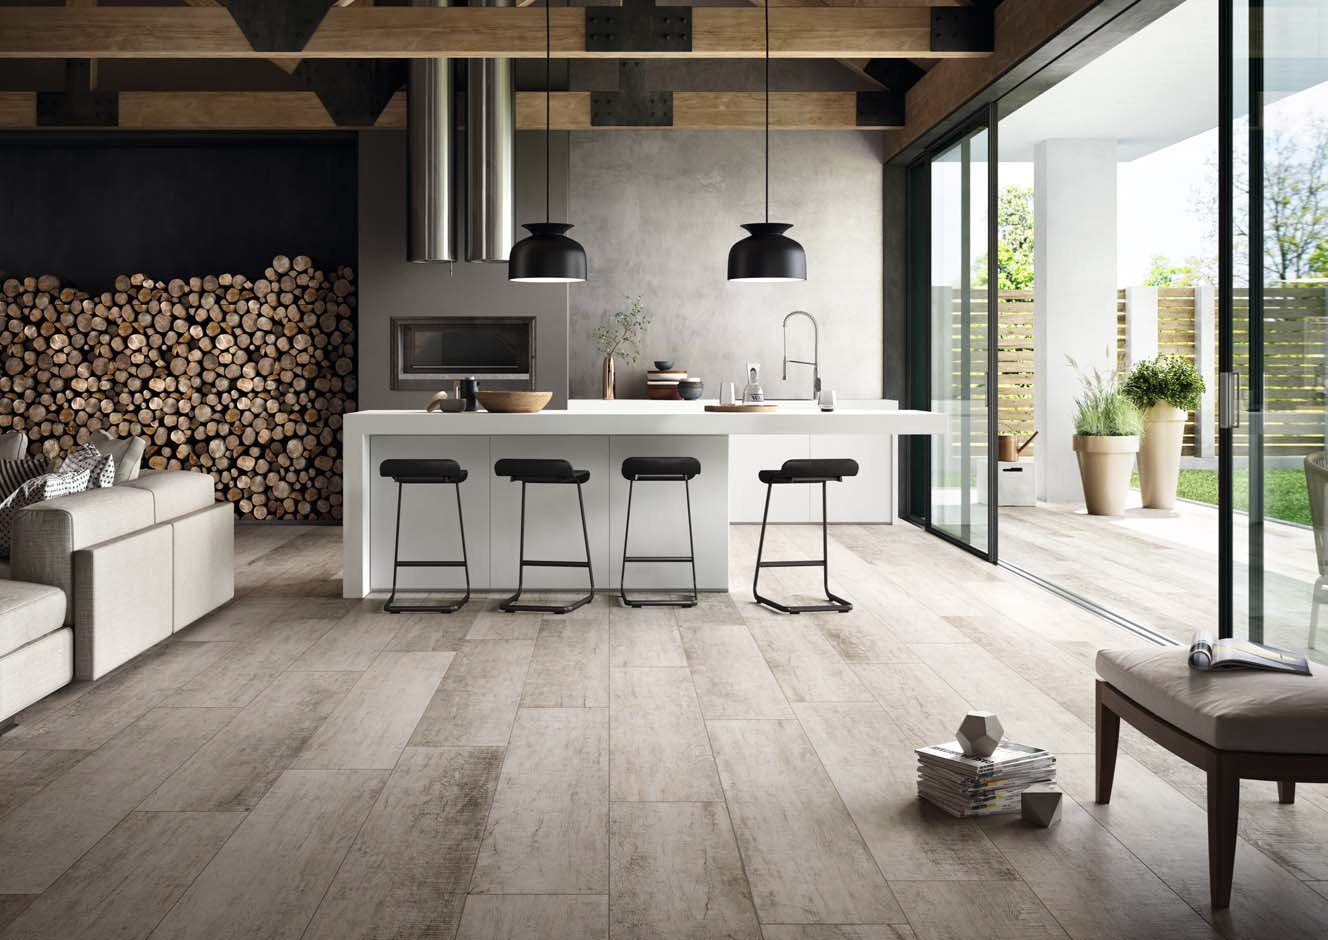 Indooroutdoor wallfloor tiles with wood effect cadore by cotto deste